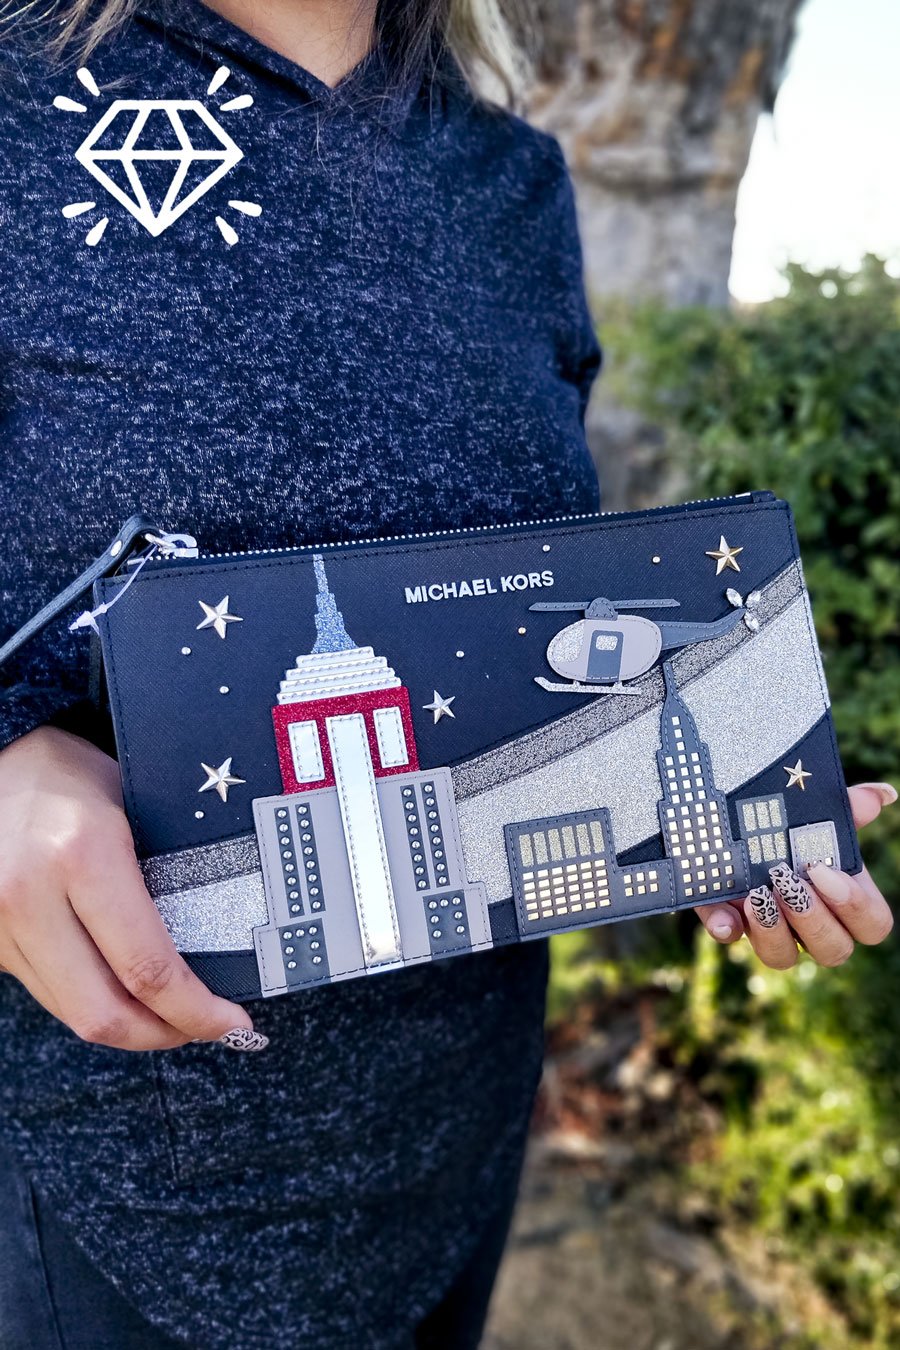 Michael Kors New York Skyline Clutch